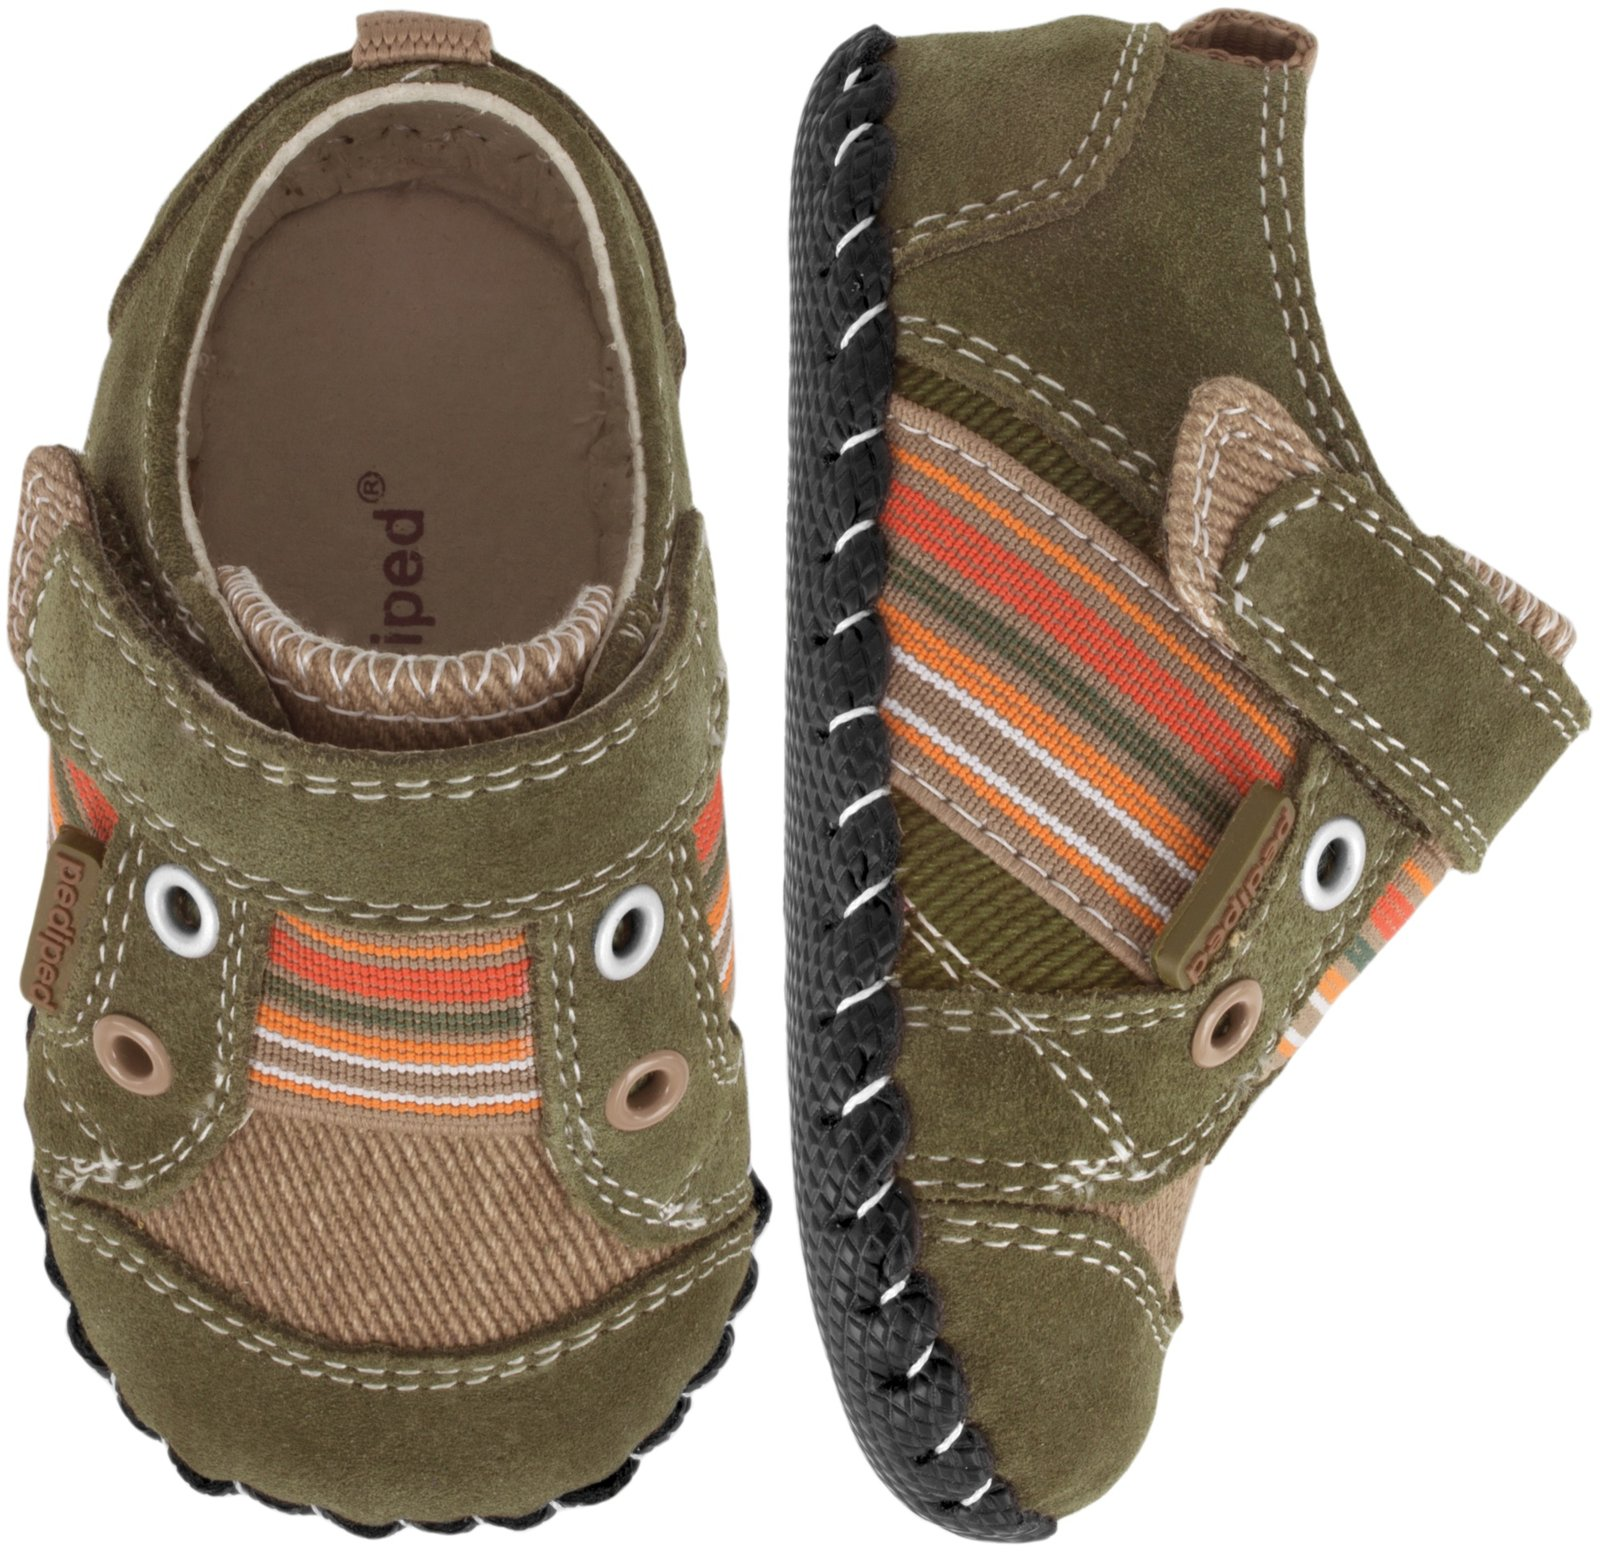 Pedipeds Original Shoes Boys Styles